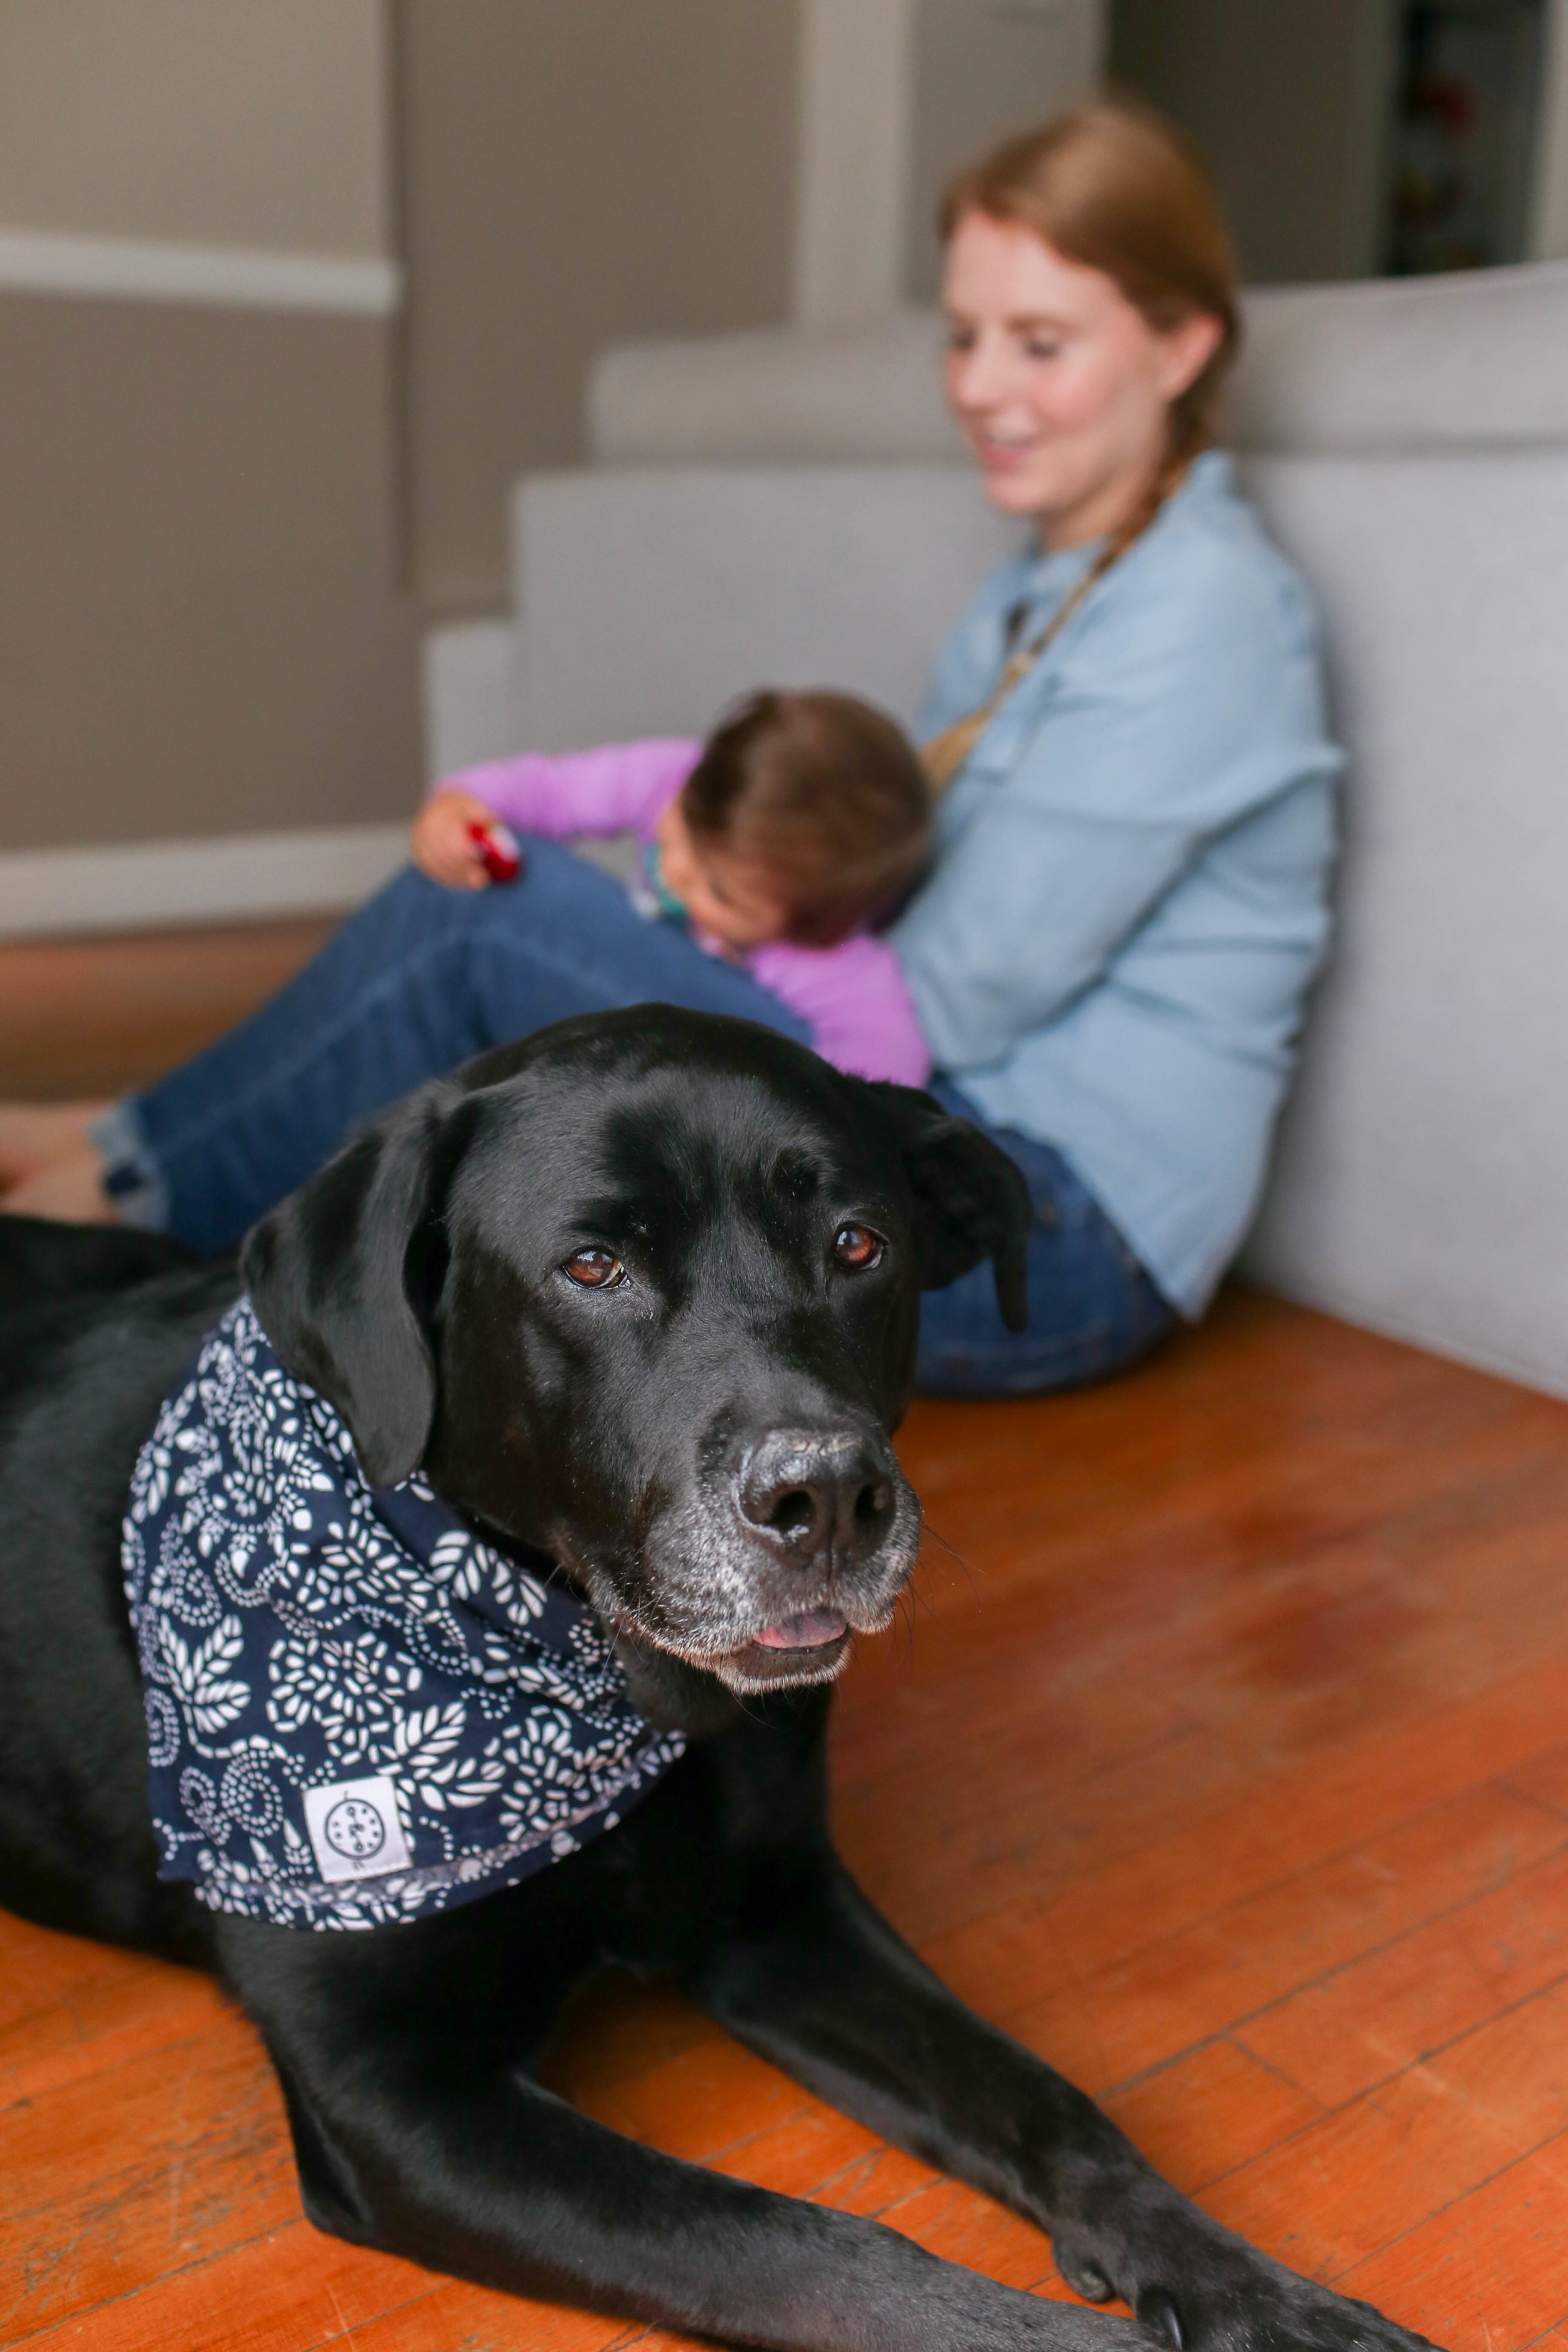 Gennifer Rose_10 Simple Ways to Prepare Your Home for a New Dog_9.jpg